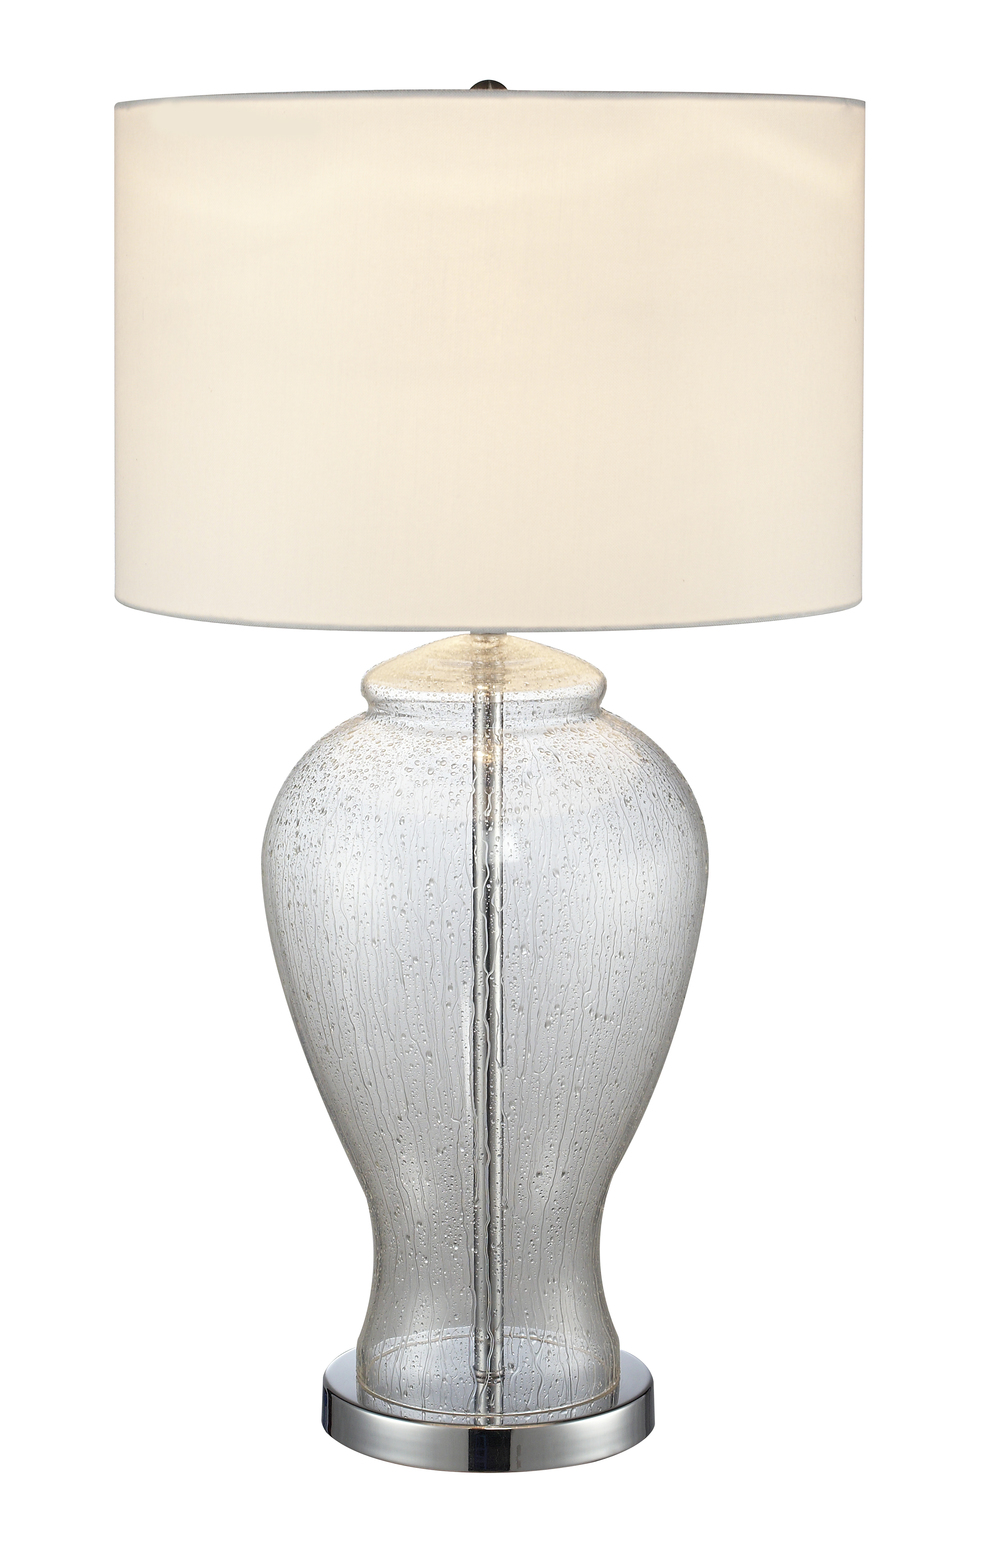 10014 | MILAN TABLE LAMP